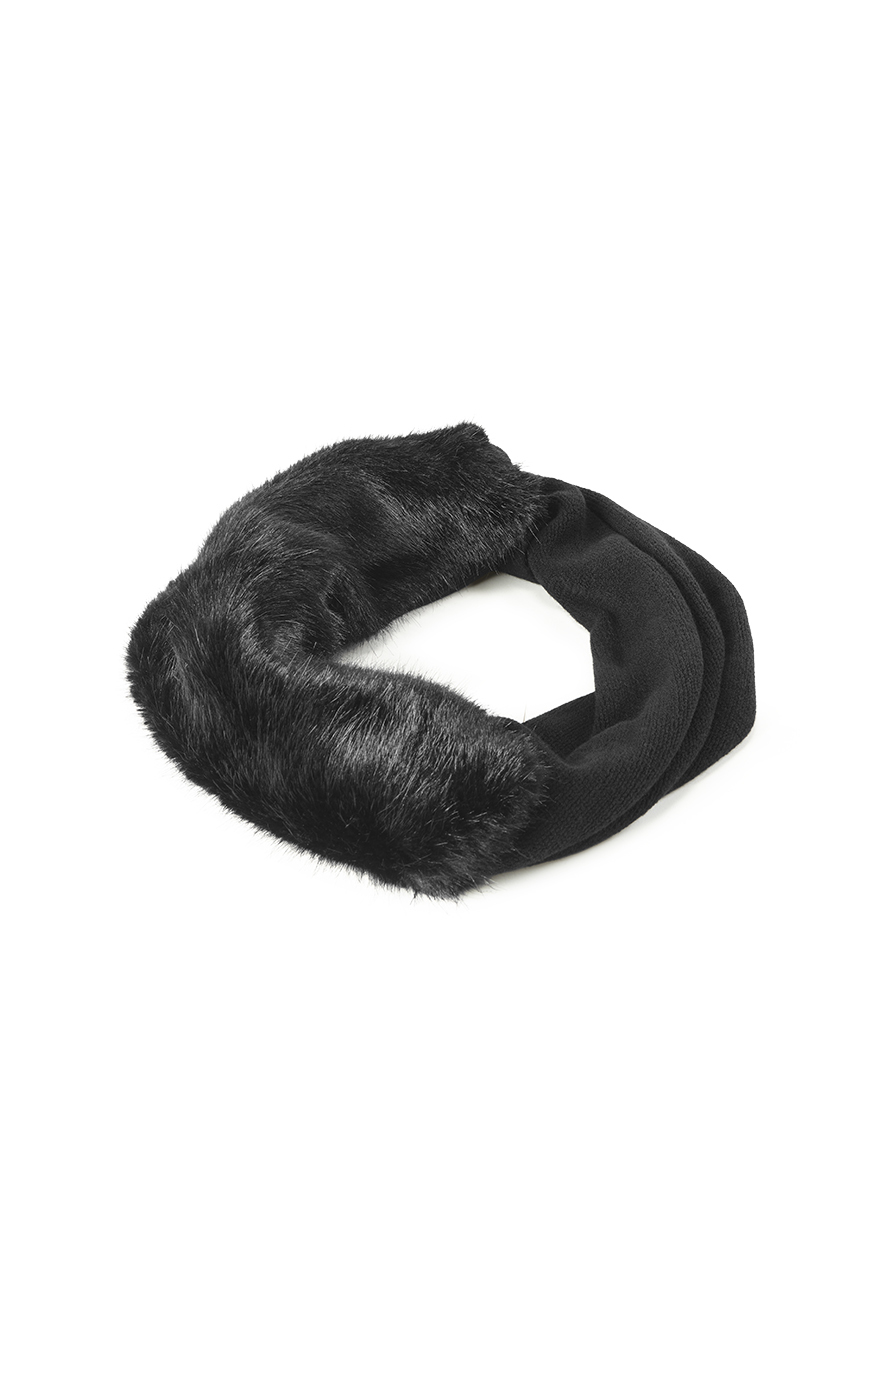 Calm Infinity Scarf in Black Front